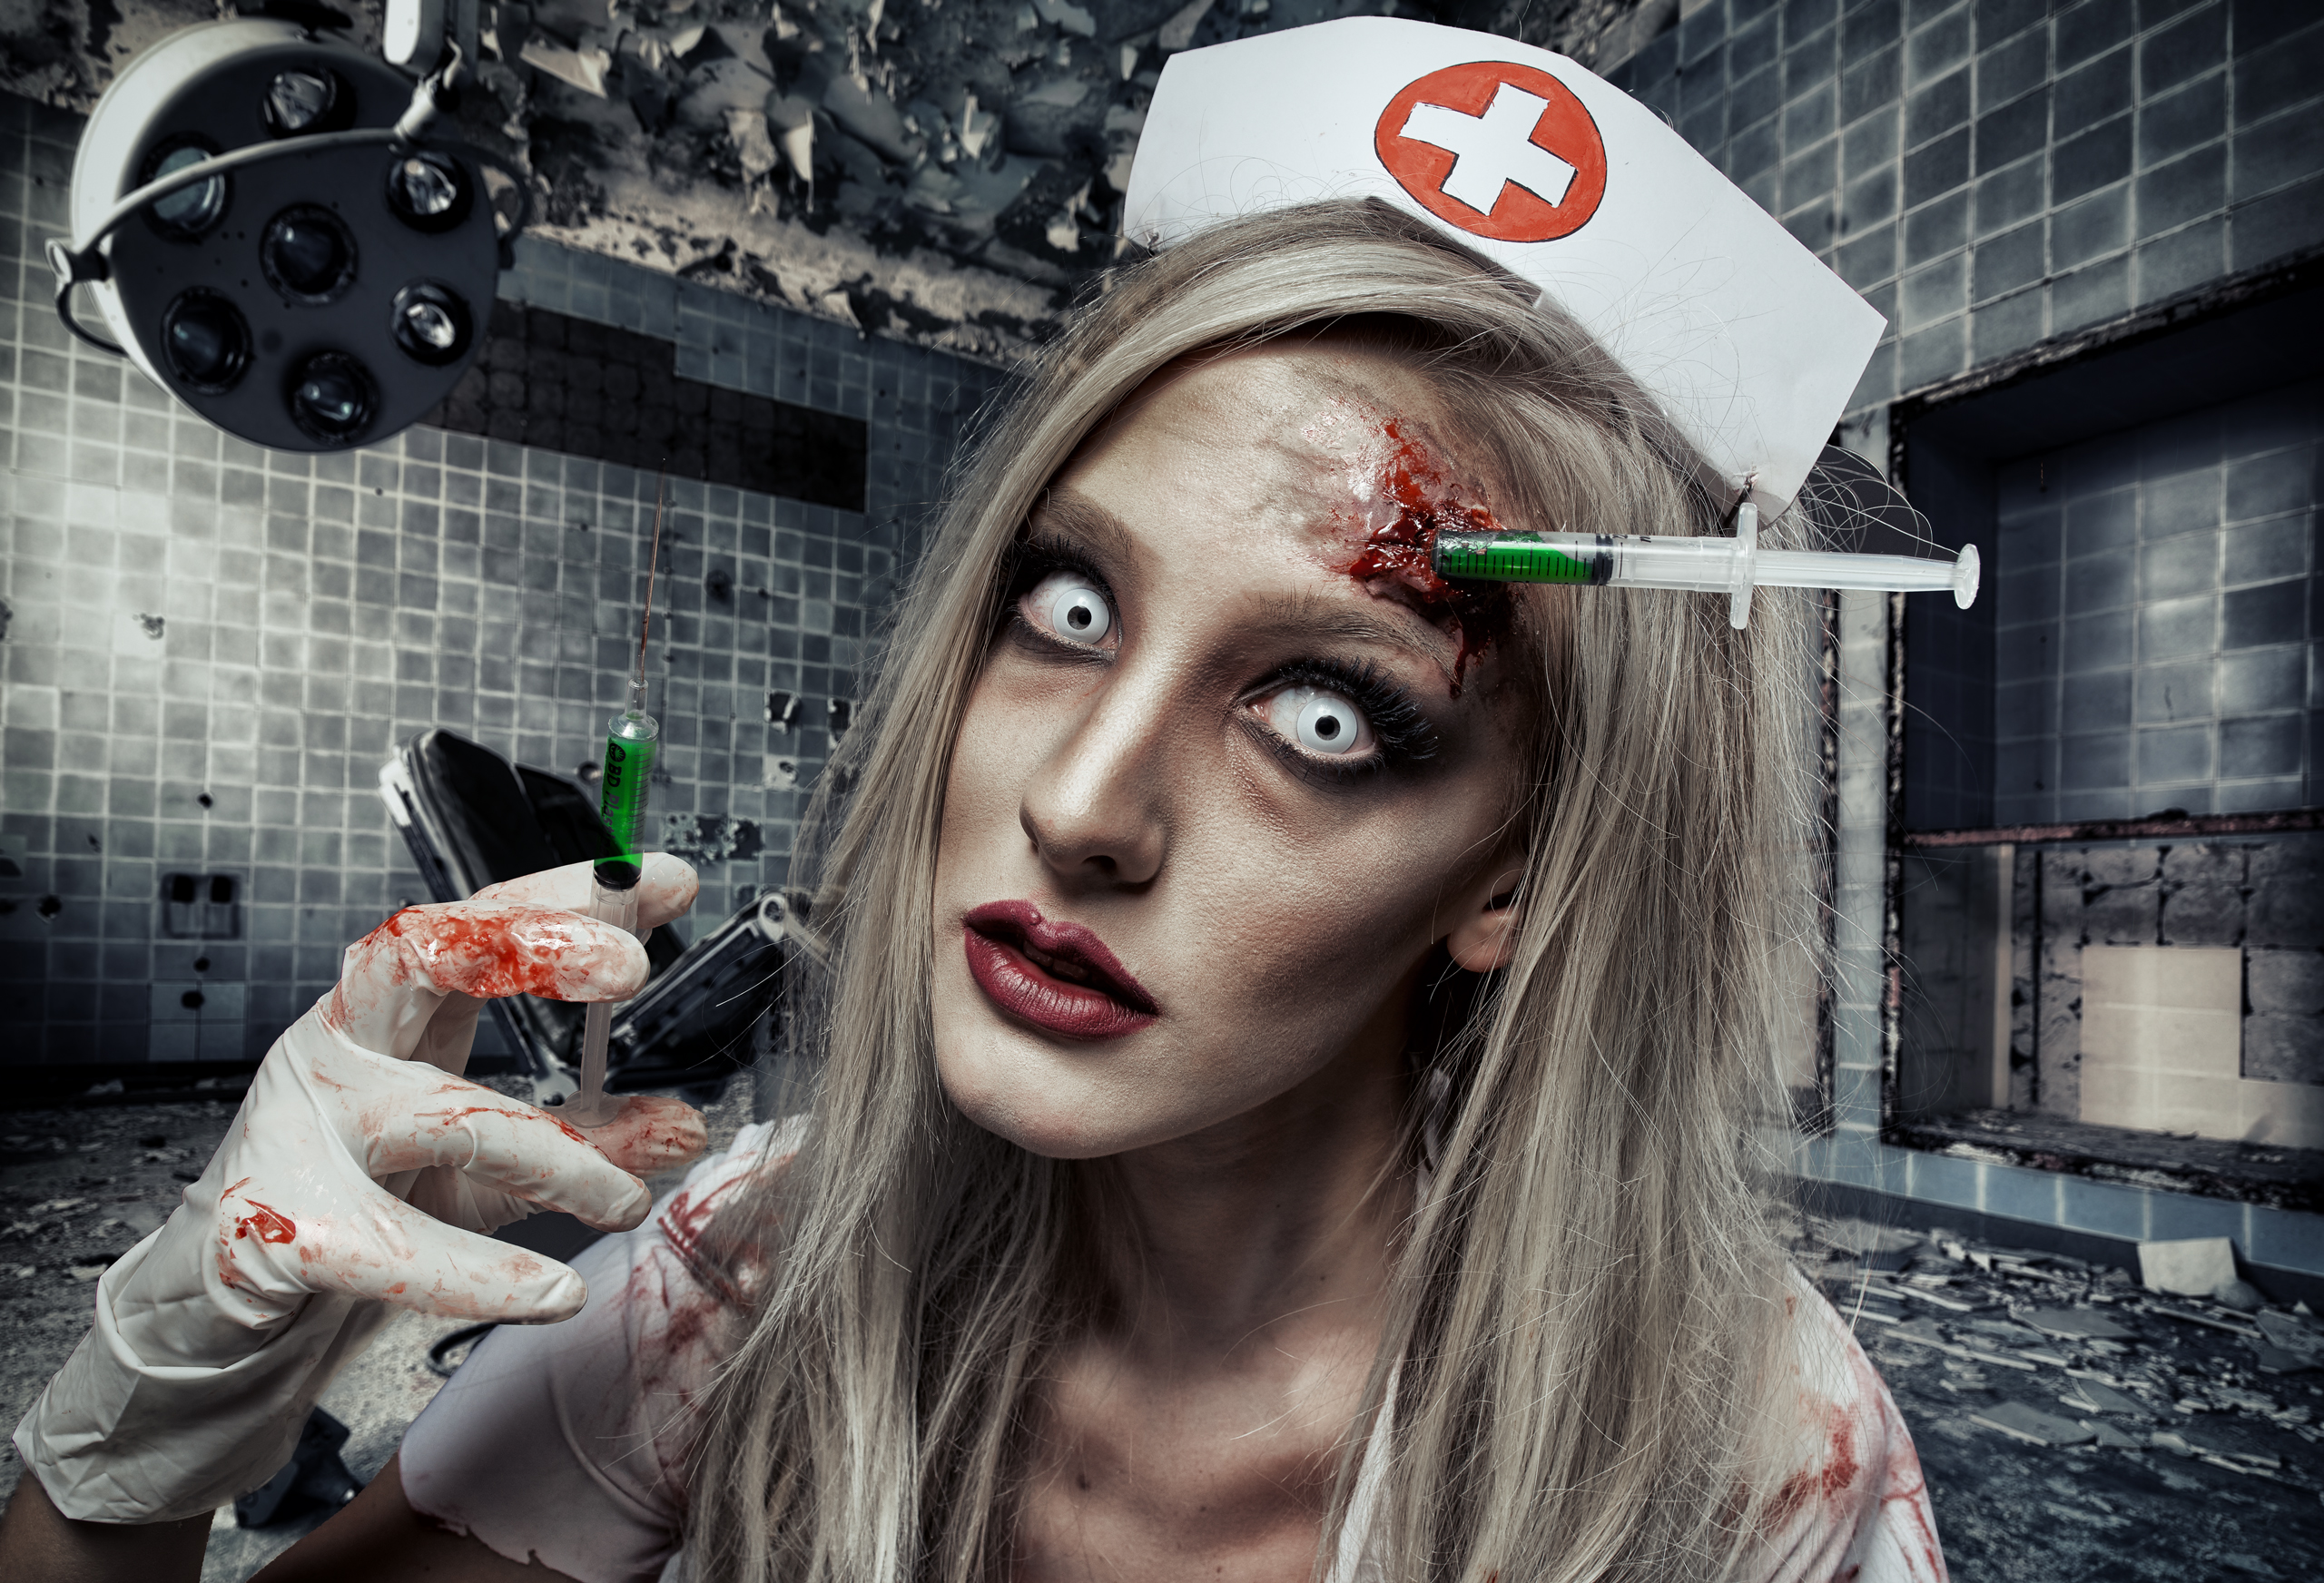 Dead nurse halloween makeup tutorial - Ellimacs SFX